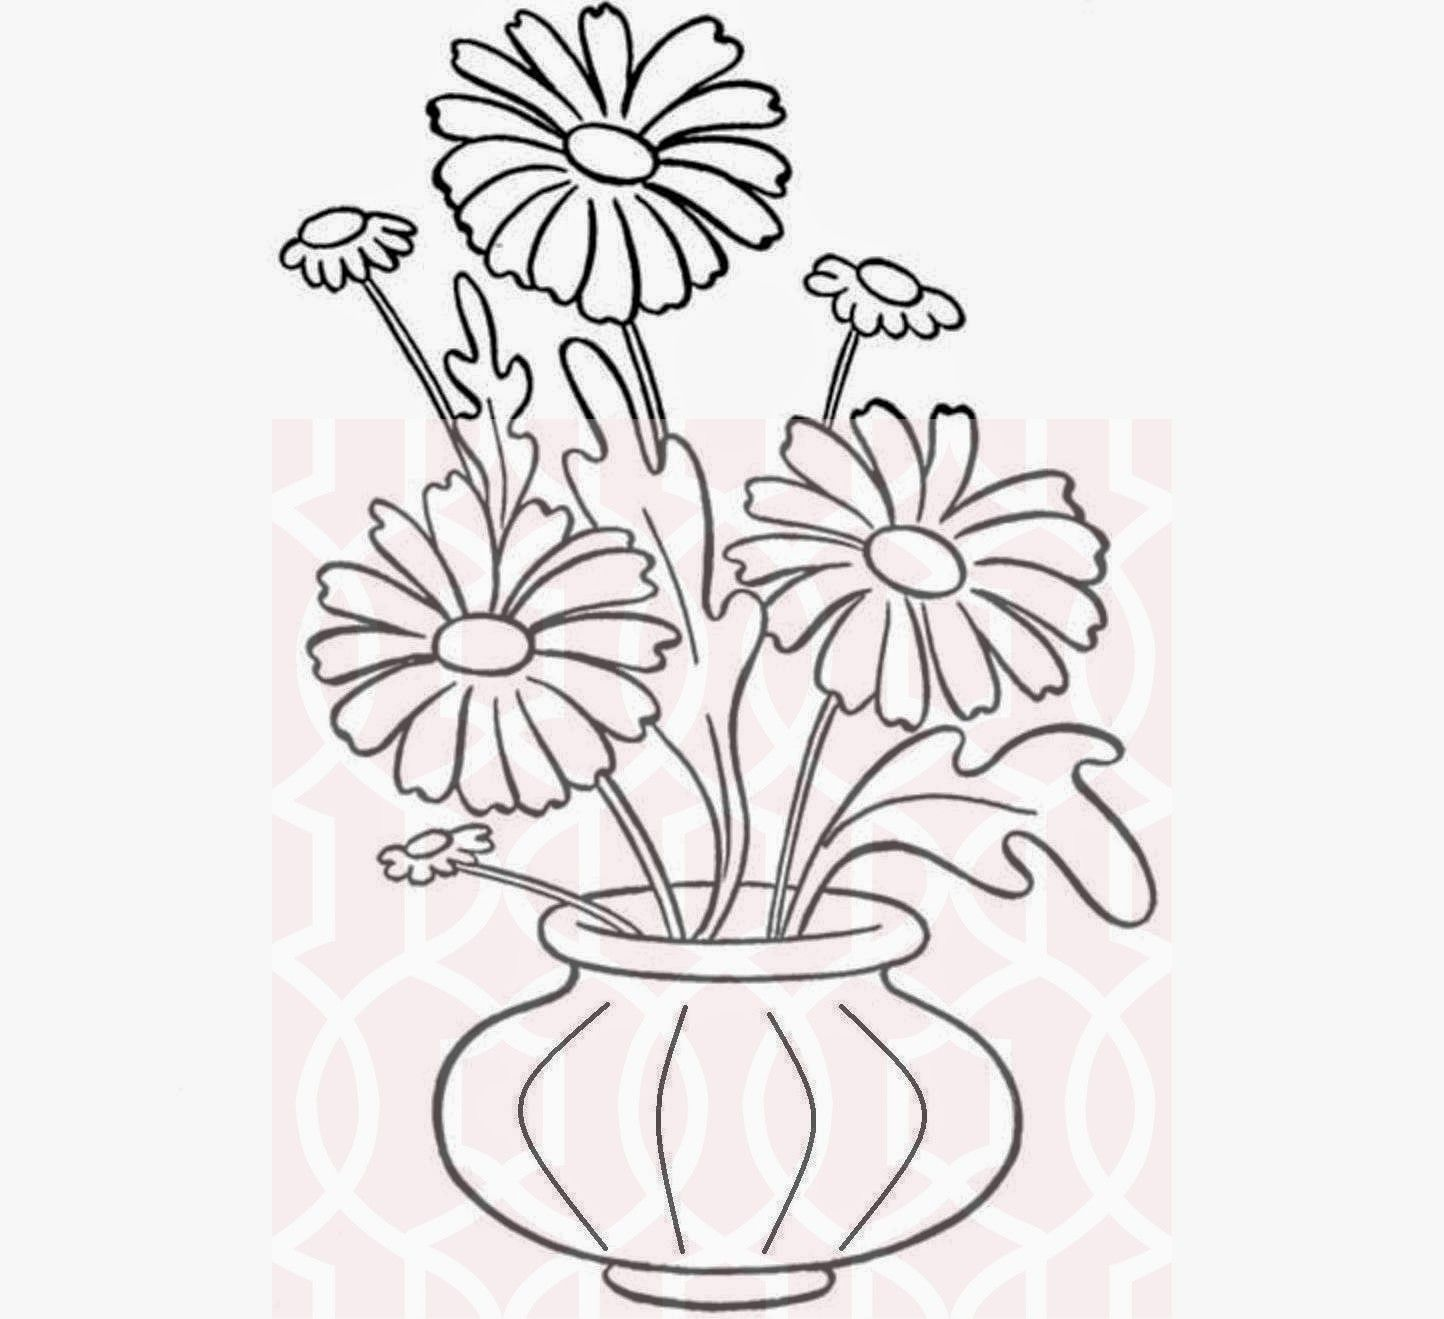 12 Uplifting Antique Vases Pink Roses Ideas Pretty Flower Drawing Easy Drawings